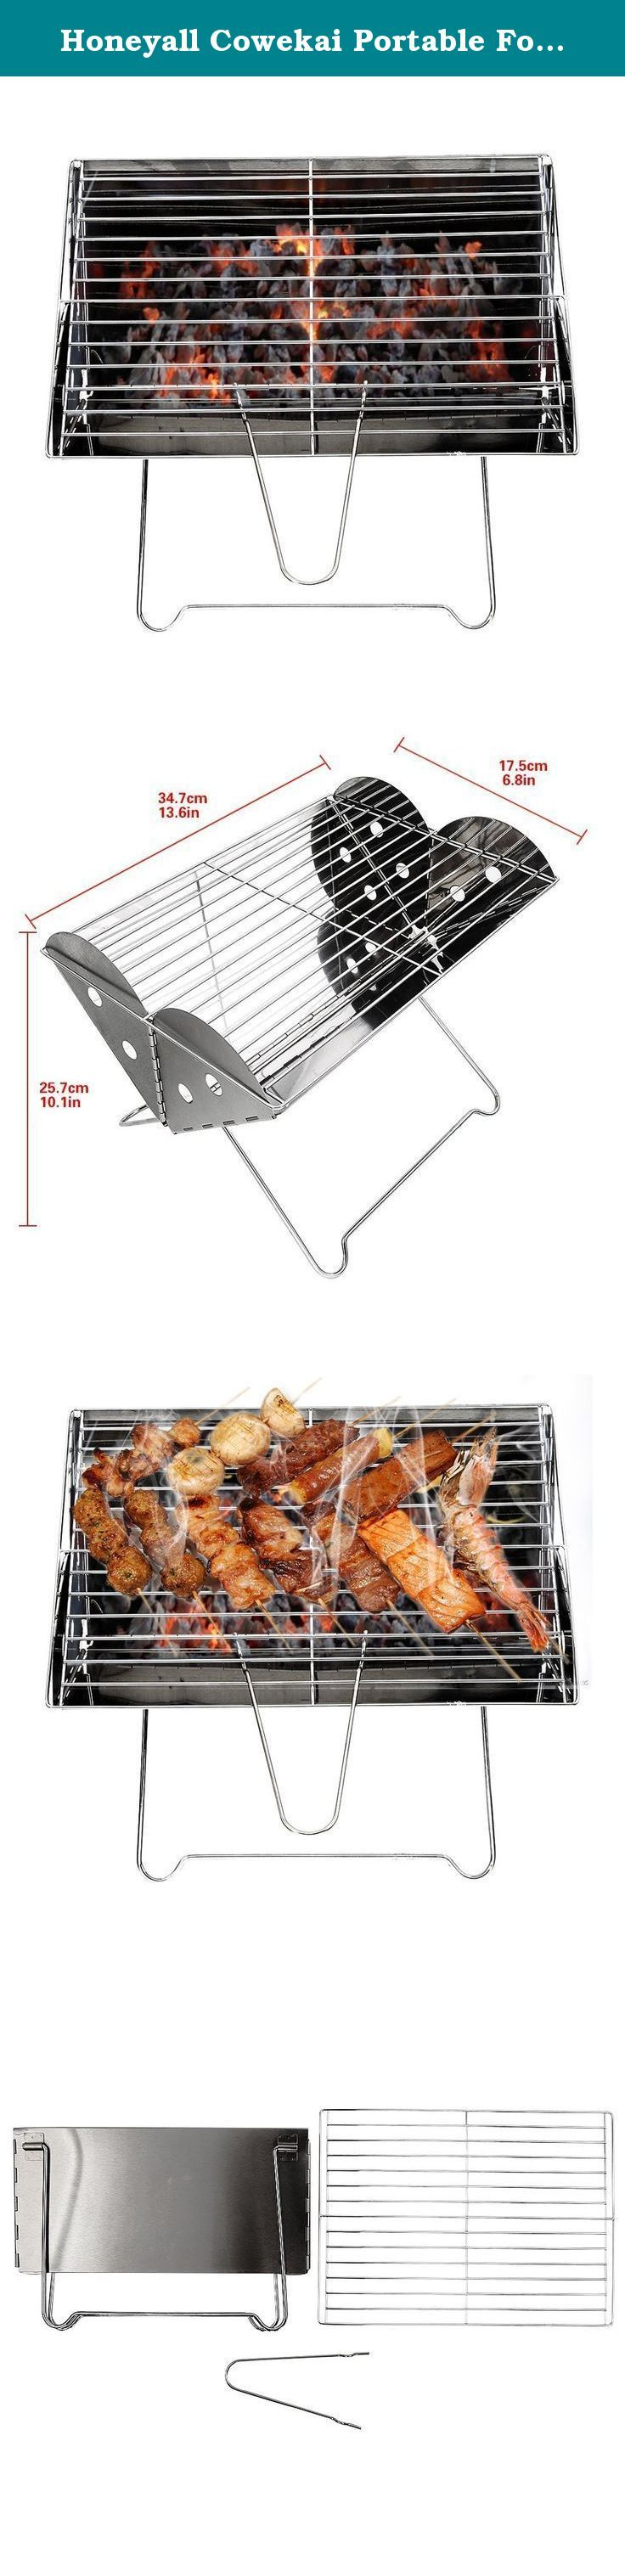 Honeyall Cowekai Portable Folding BBQ Grill,Stainless Steel chromed Cooking Mesh Barbecue Grill Handbag for outdoor travel camping Picnic or Home. Let's start enjoy outdoor BBQ with this handbag grill! Or you can make BBQ in your backyard and share it with your family members or lovers. Image that how cool or Romantic! Features: Fuel: charcoal Material: stainless steel Portable and foldable BBQ Easy to install. Don't need any tools. Parameters: (weight and size may have little error)...